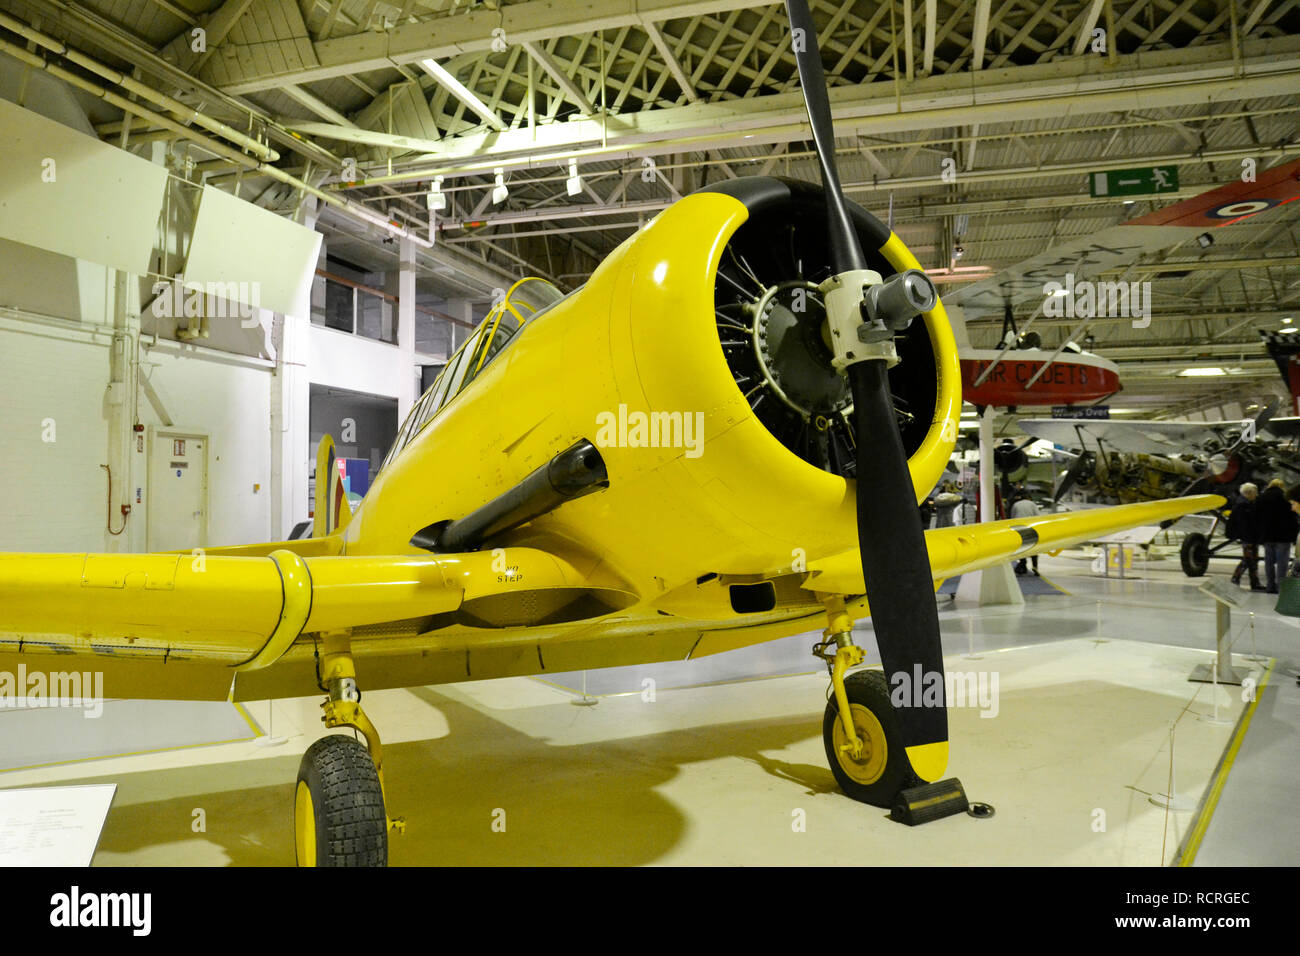 The North American Harvard Advanced Trainer WWII Military Aircraft on display at the RAF Museum, London, UK. Used by British Forces to train pilots. - Stock Image